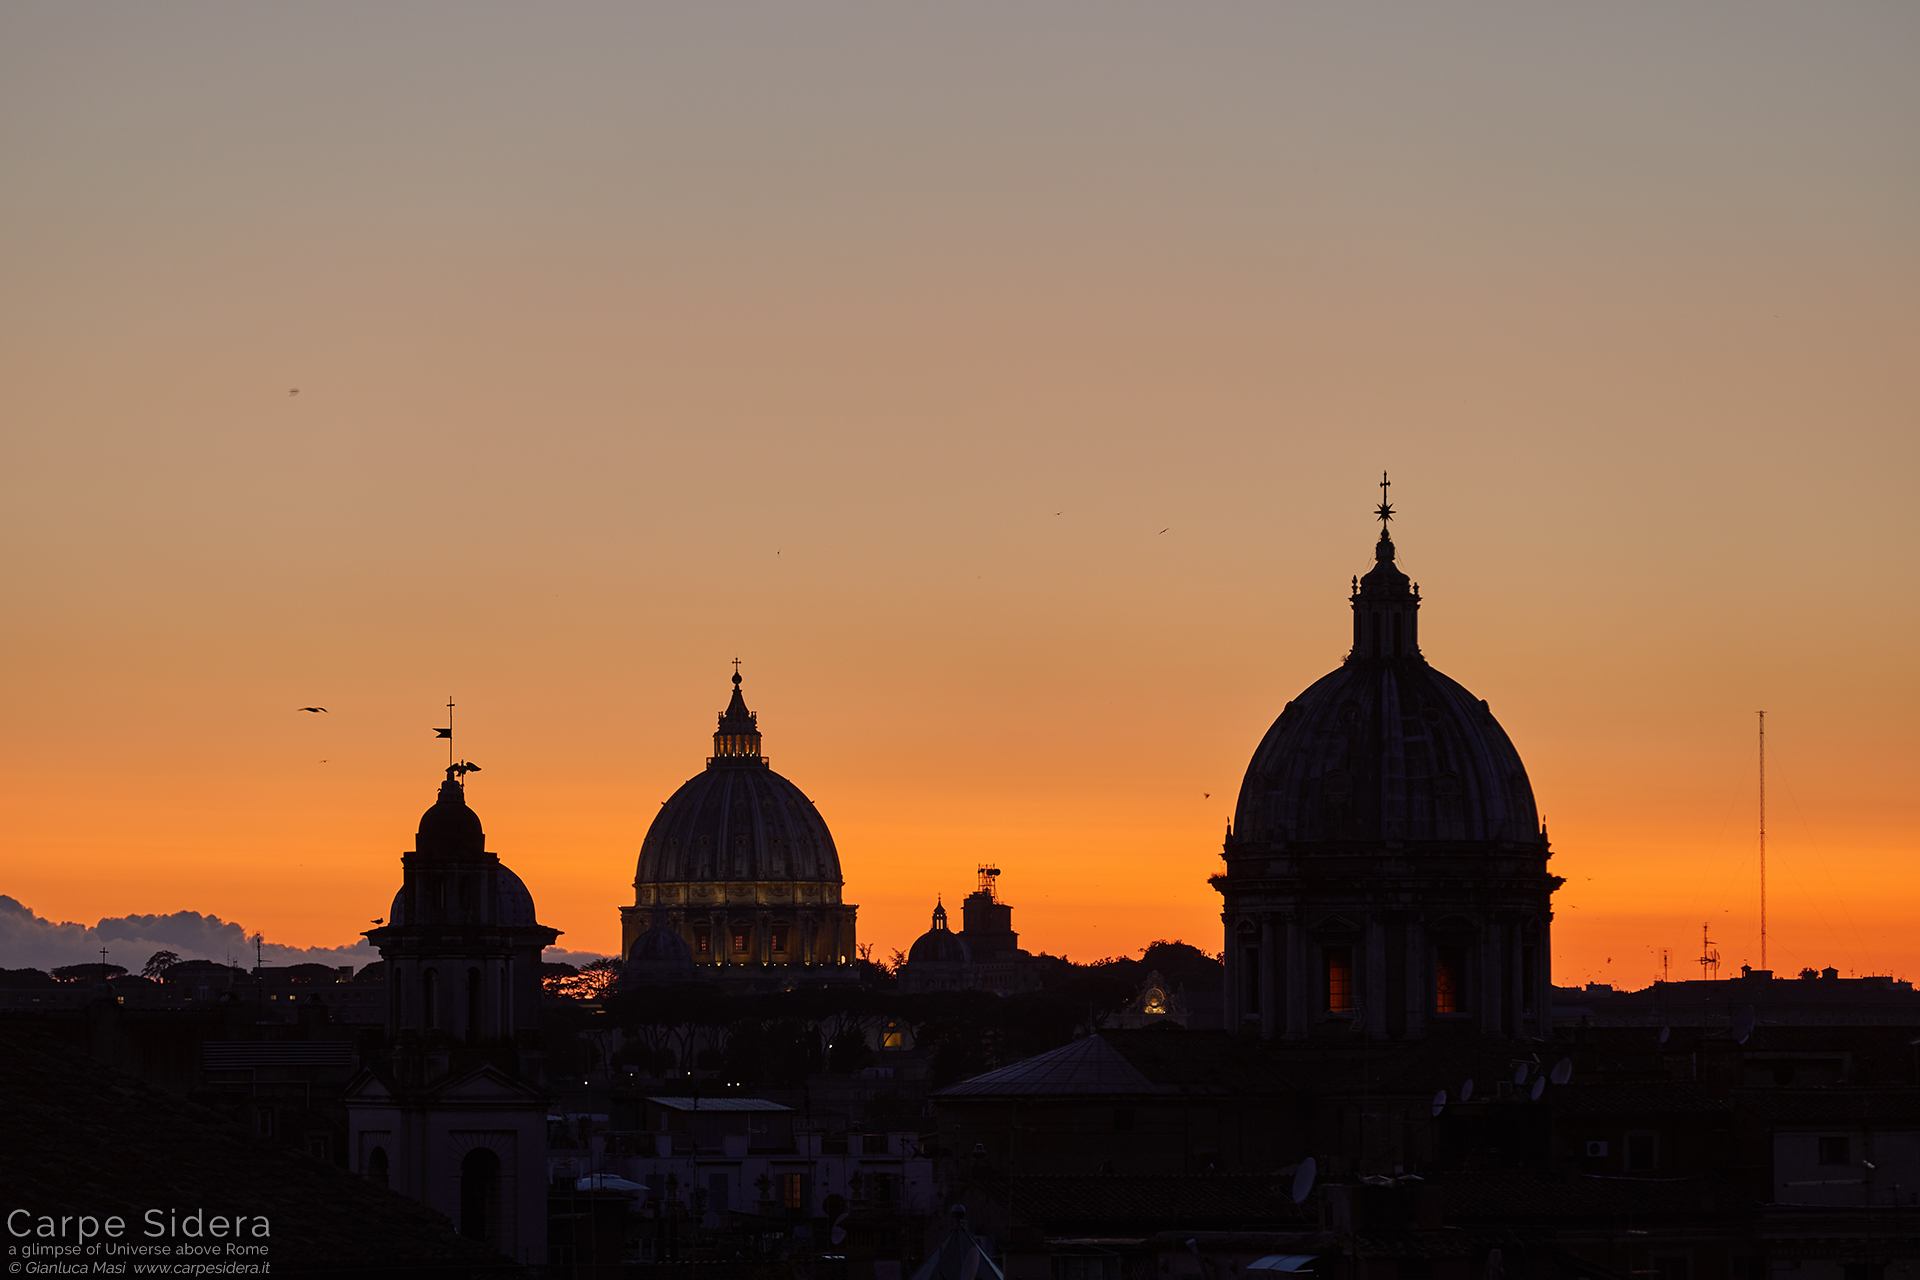 A close up to St. Peter's Dome (left) and Sant'Andrea della Valle (right)